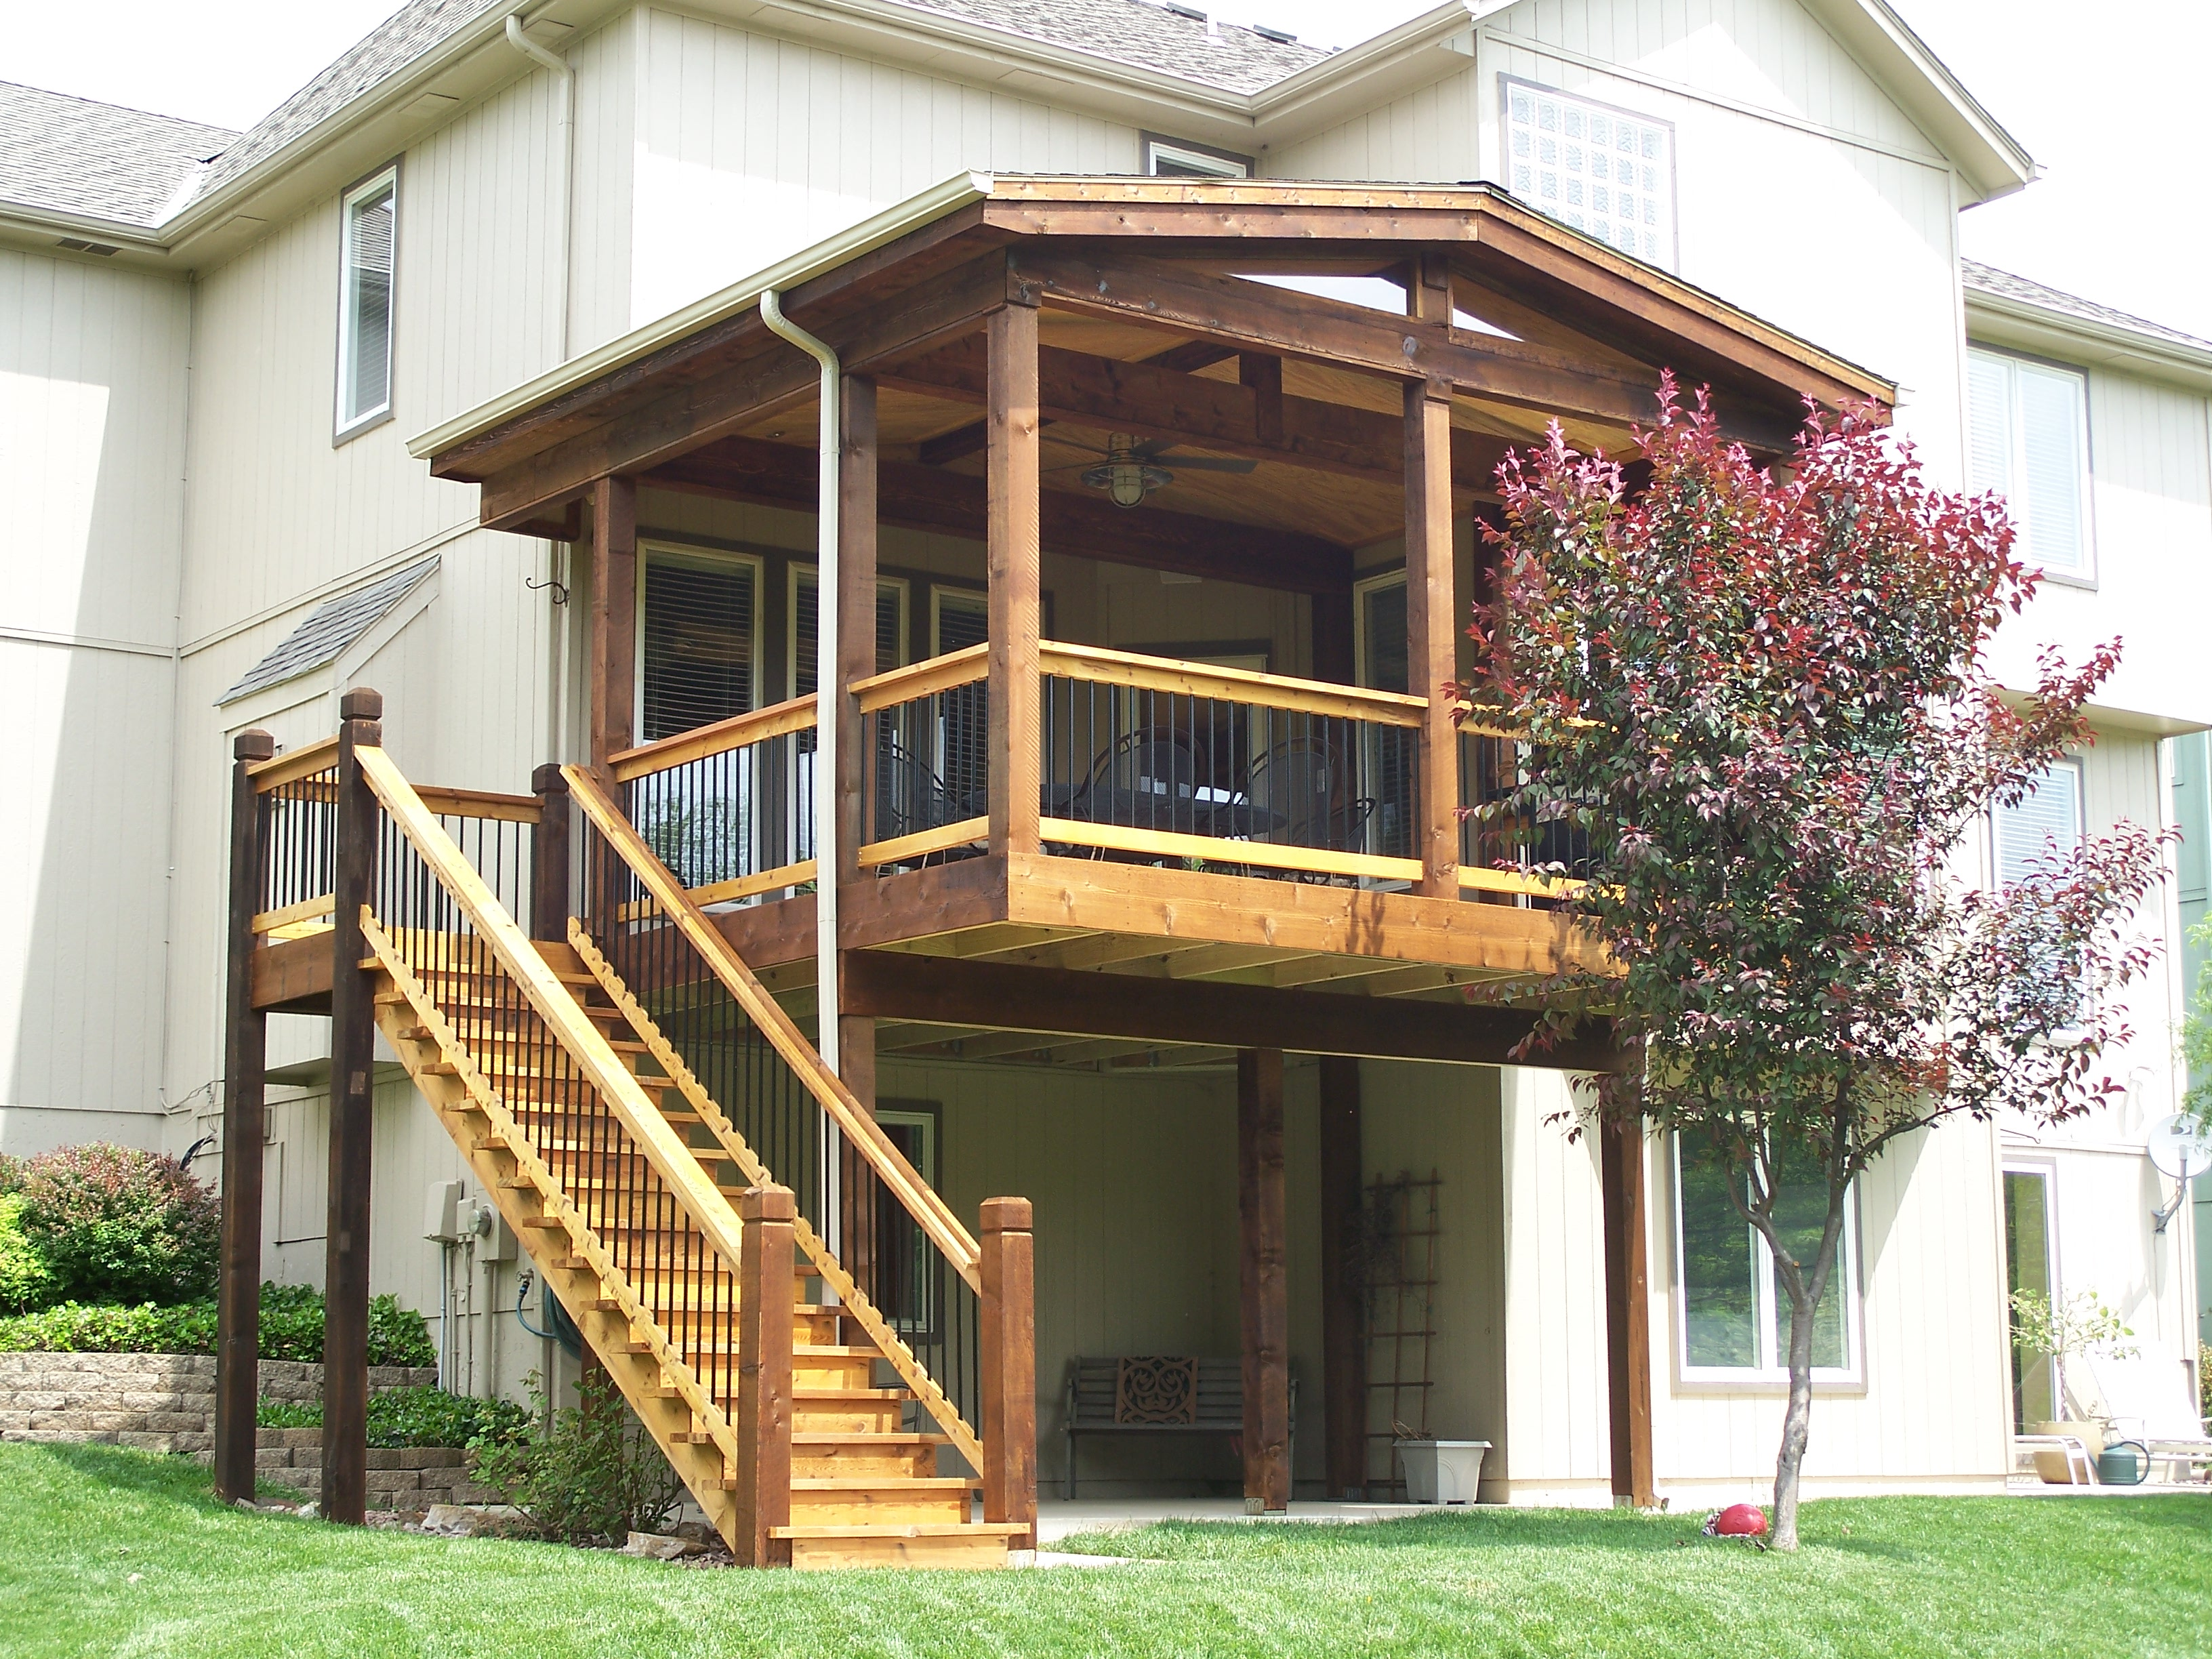 Great Ideas for Elevated Decks with Stairs That You'll ... on Deck Over Patio Ideas id=26722